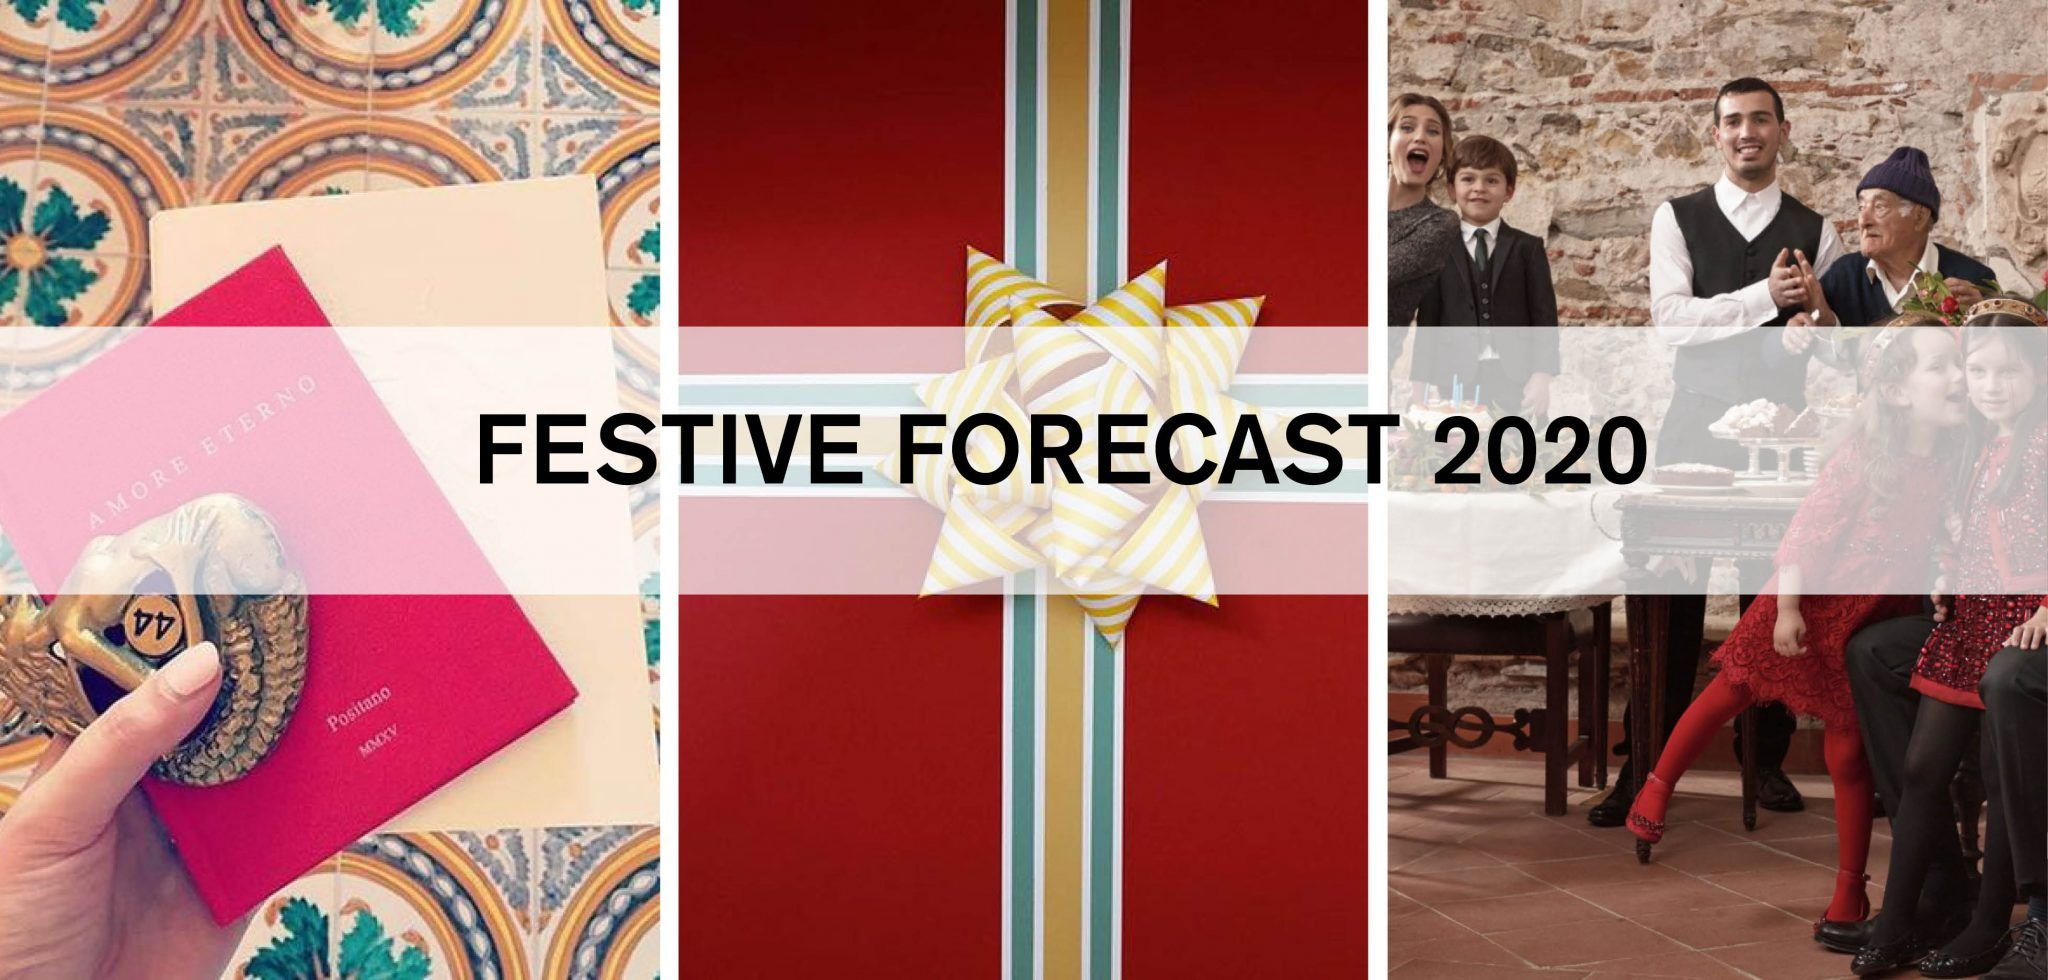 New Release Festive Forecast 2020 Trend Bible In 2020 Christmas Trends Christmas Bible Trend Forecasting